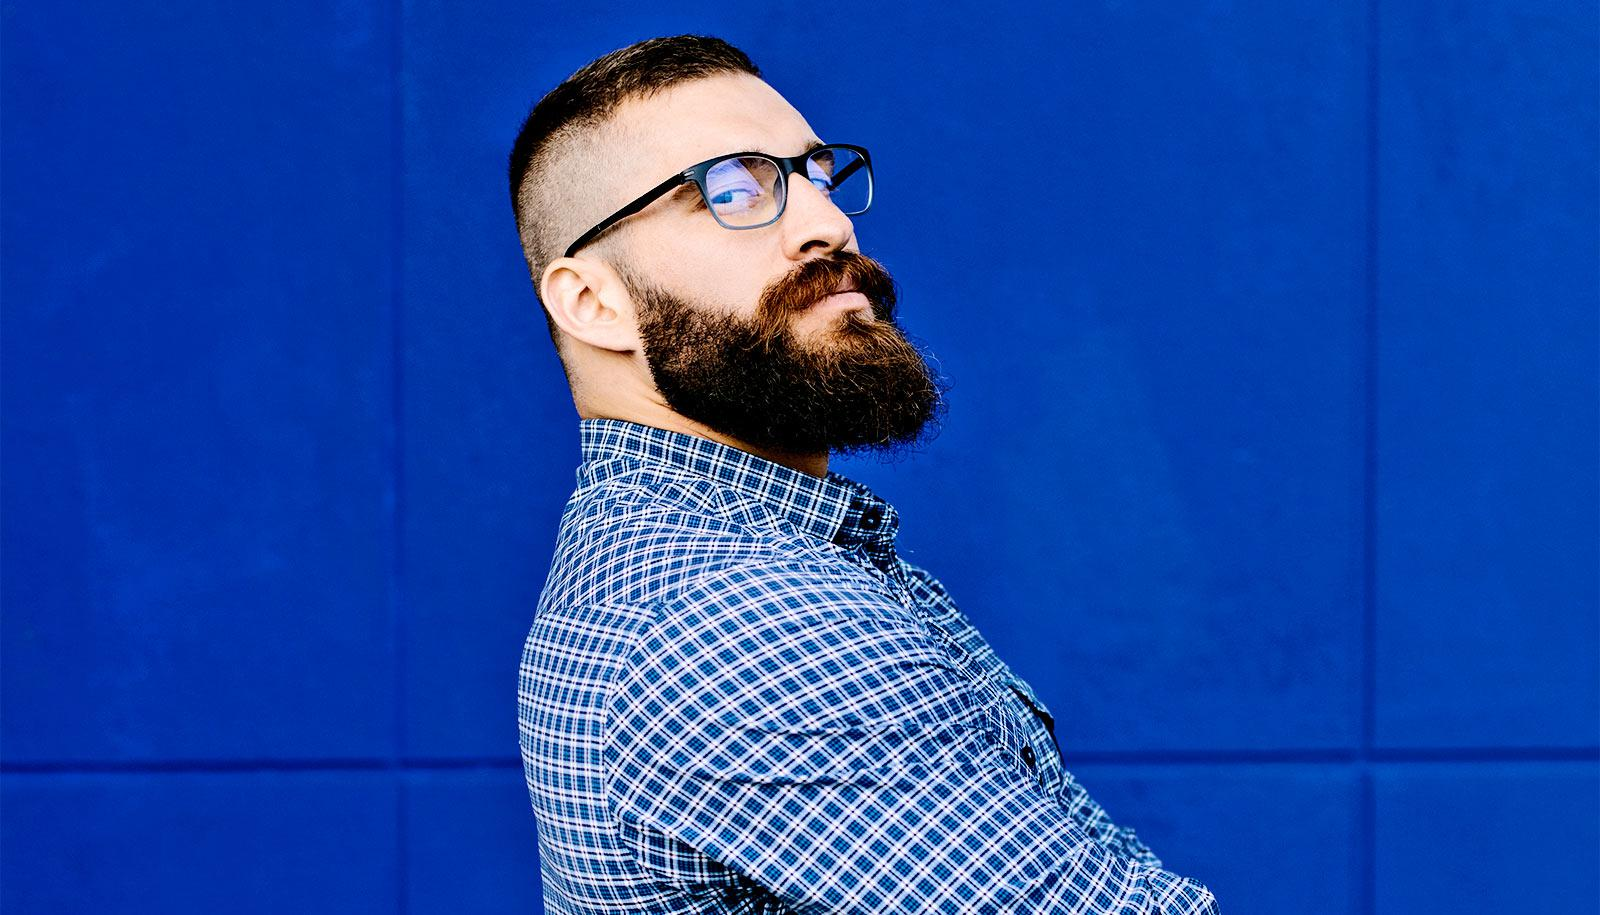 A man with a beard and glasses crosses his arms and looks over his shoulder while standing against a blue wall